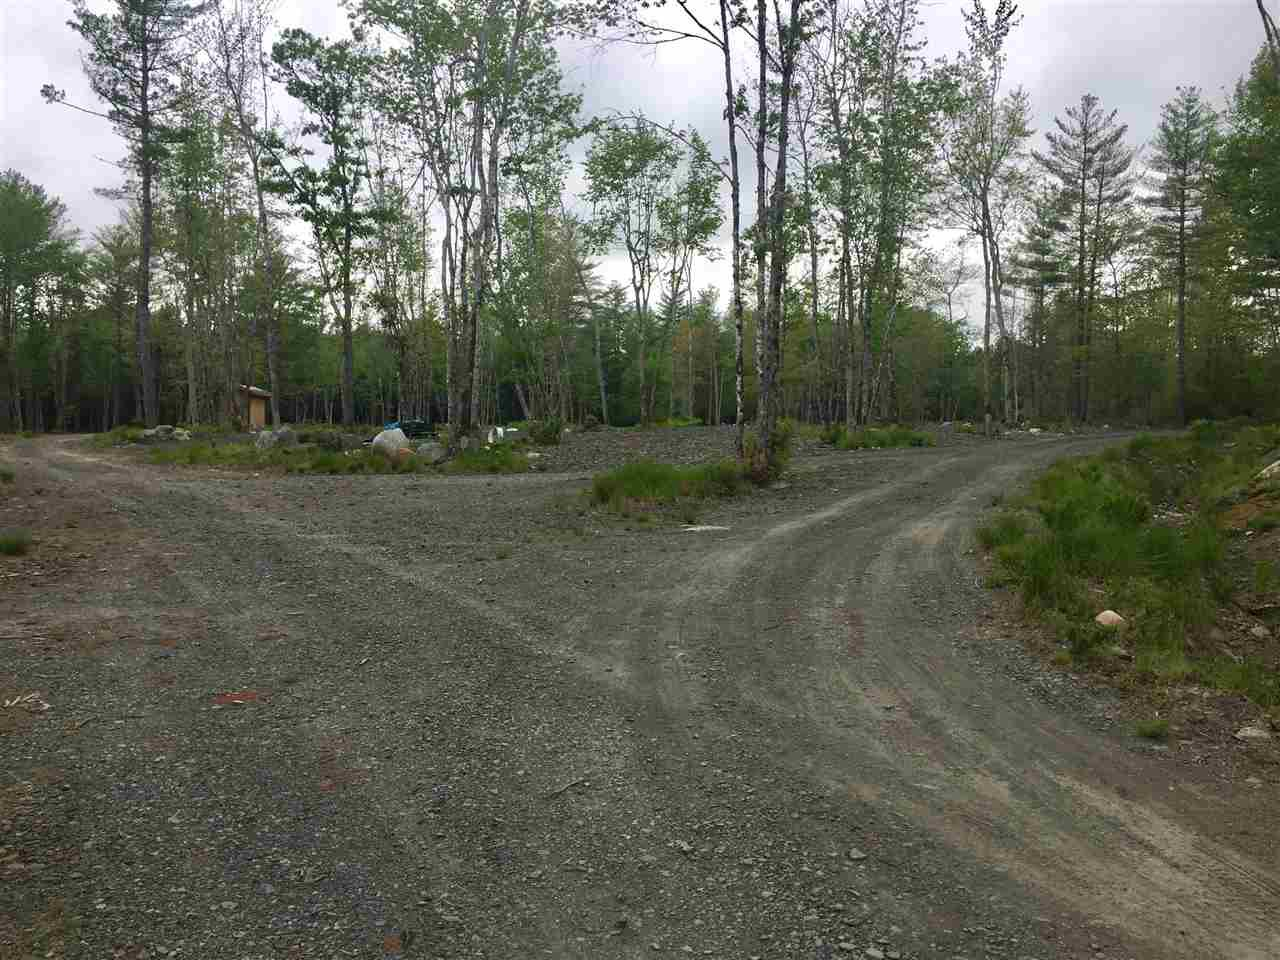 Photo 3: Photos: 6720 Hwy 325 in West Clifford: 405-Lunenburg County Commercial for sale (South Shore)  : MLS®# 202011822